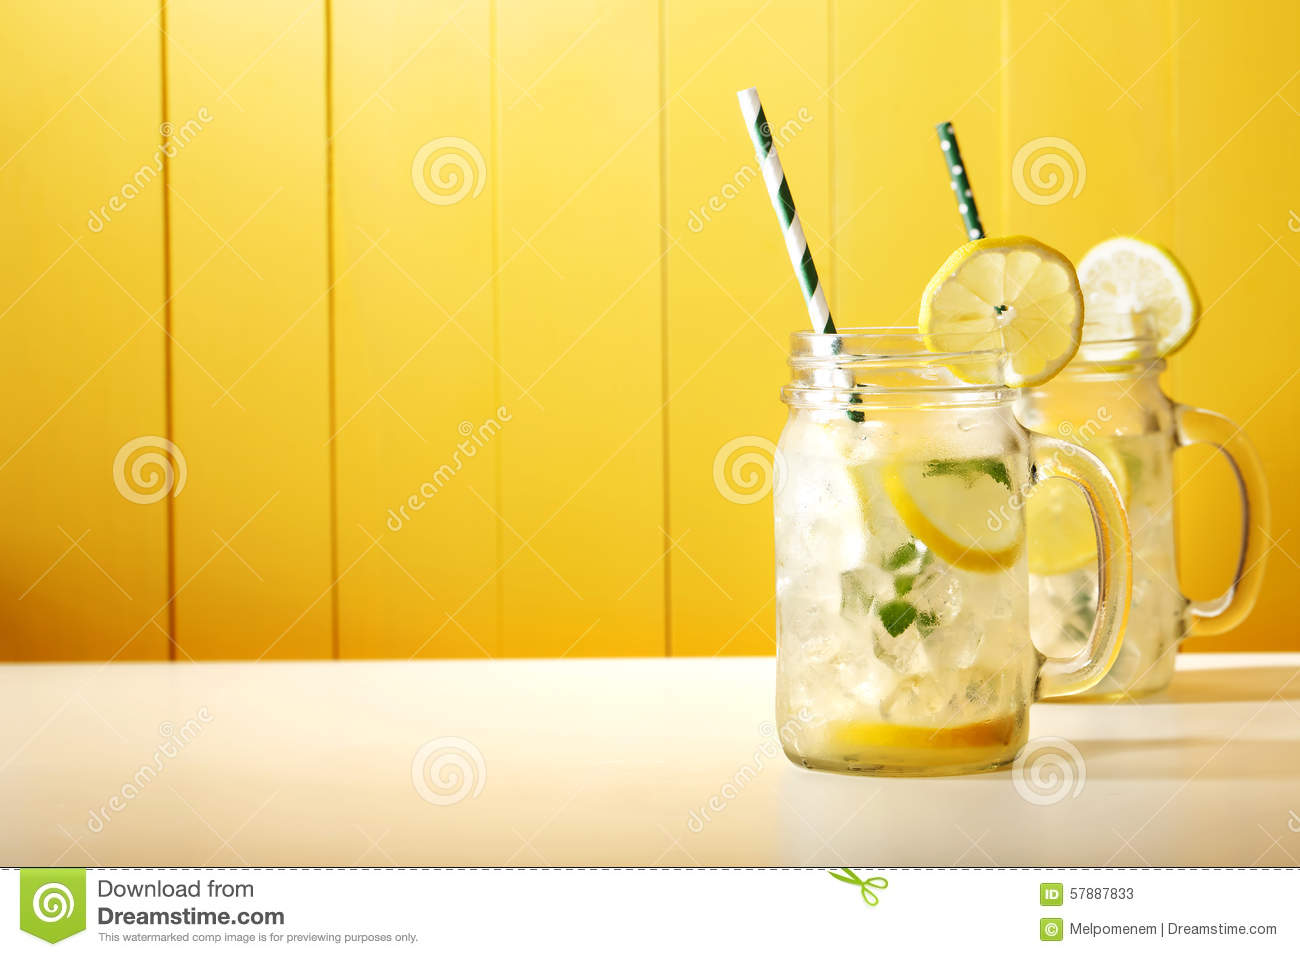 make lemonade essay Free essay: specific purpose: after my speech, my class will understand how to  make their own terrariums and how to  from strawberry lemonade to chocolate  lemonade, there are a wide range of ways to make lemonade.